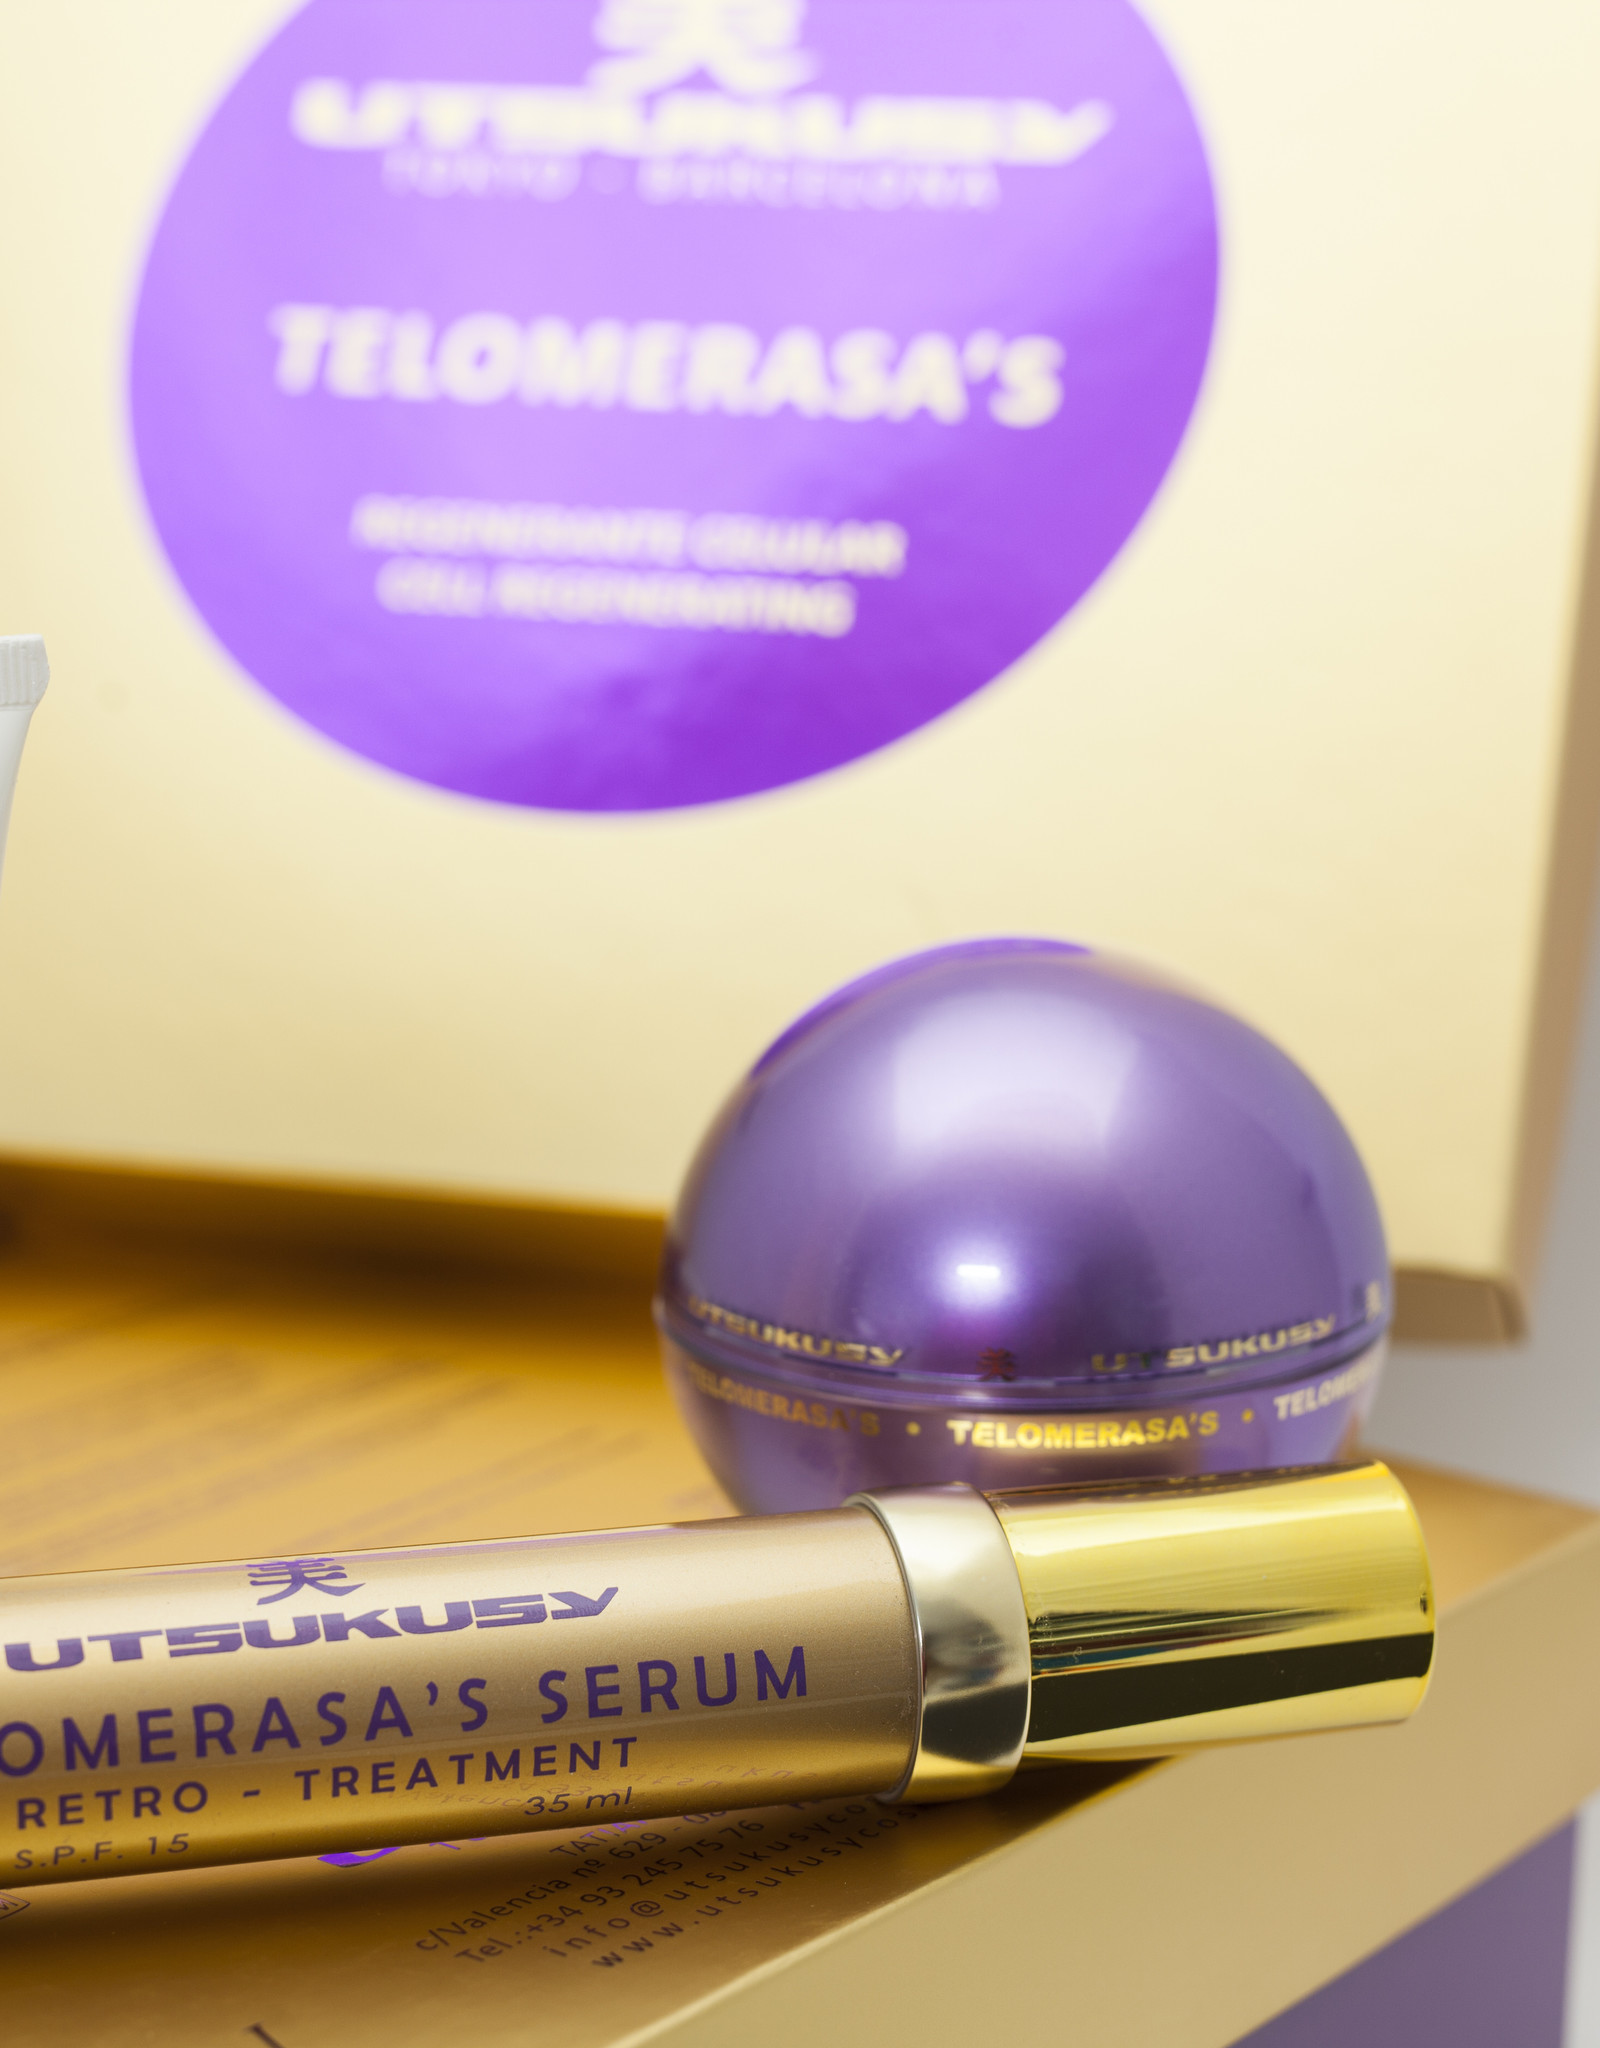 Utsukusy Telomerasa's home care kit